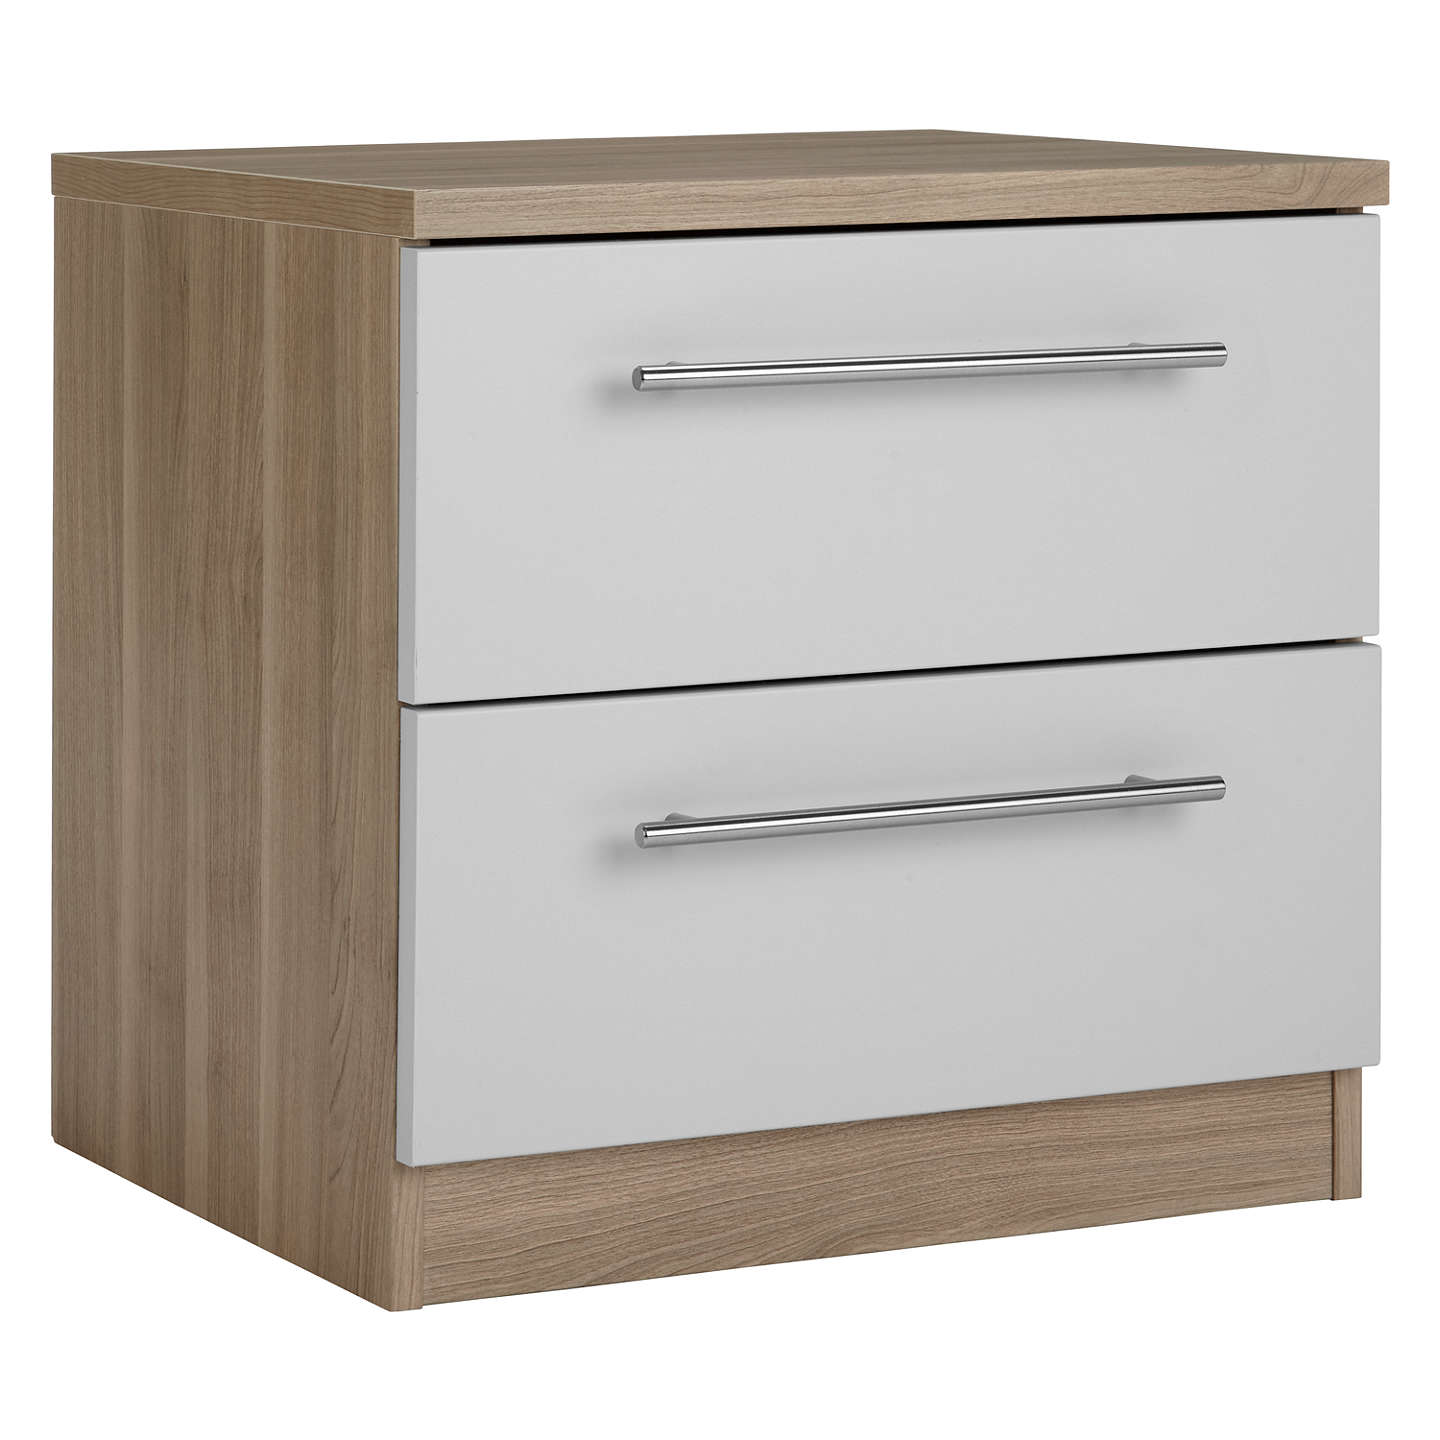 BuyHouse by John Lewis Mix it T-Bar Handle Bedside Chest, House Smoke/Grey Ash Online at johnlewis.com